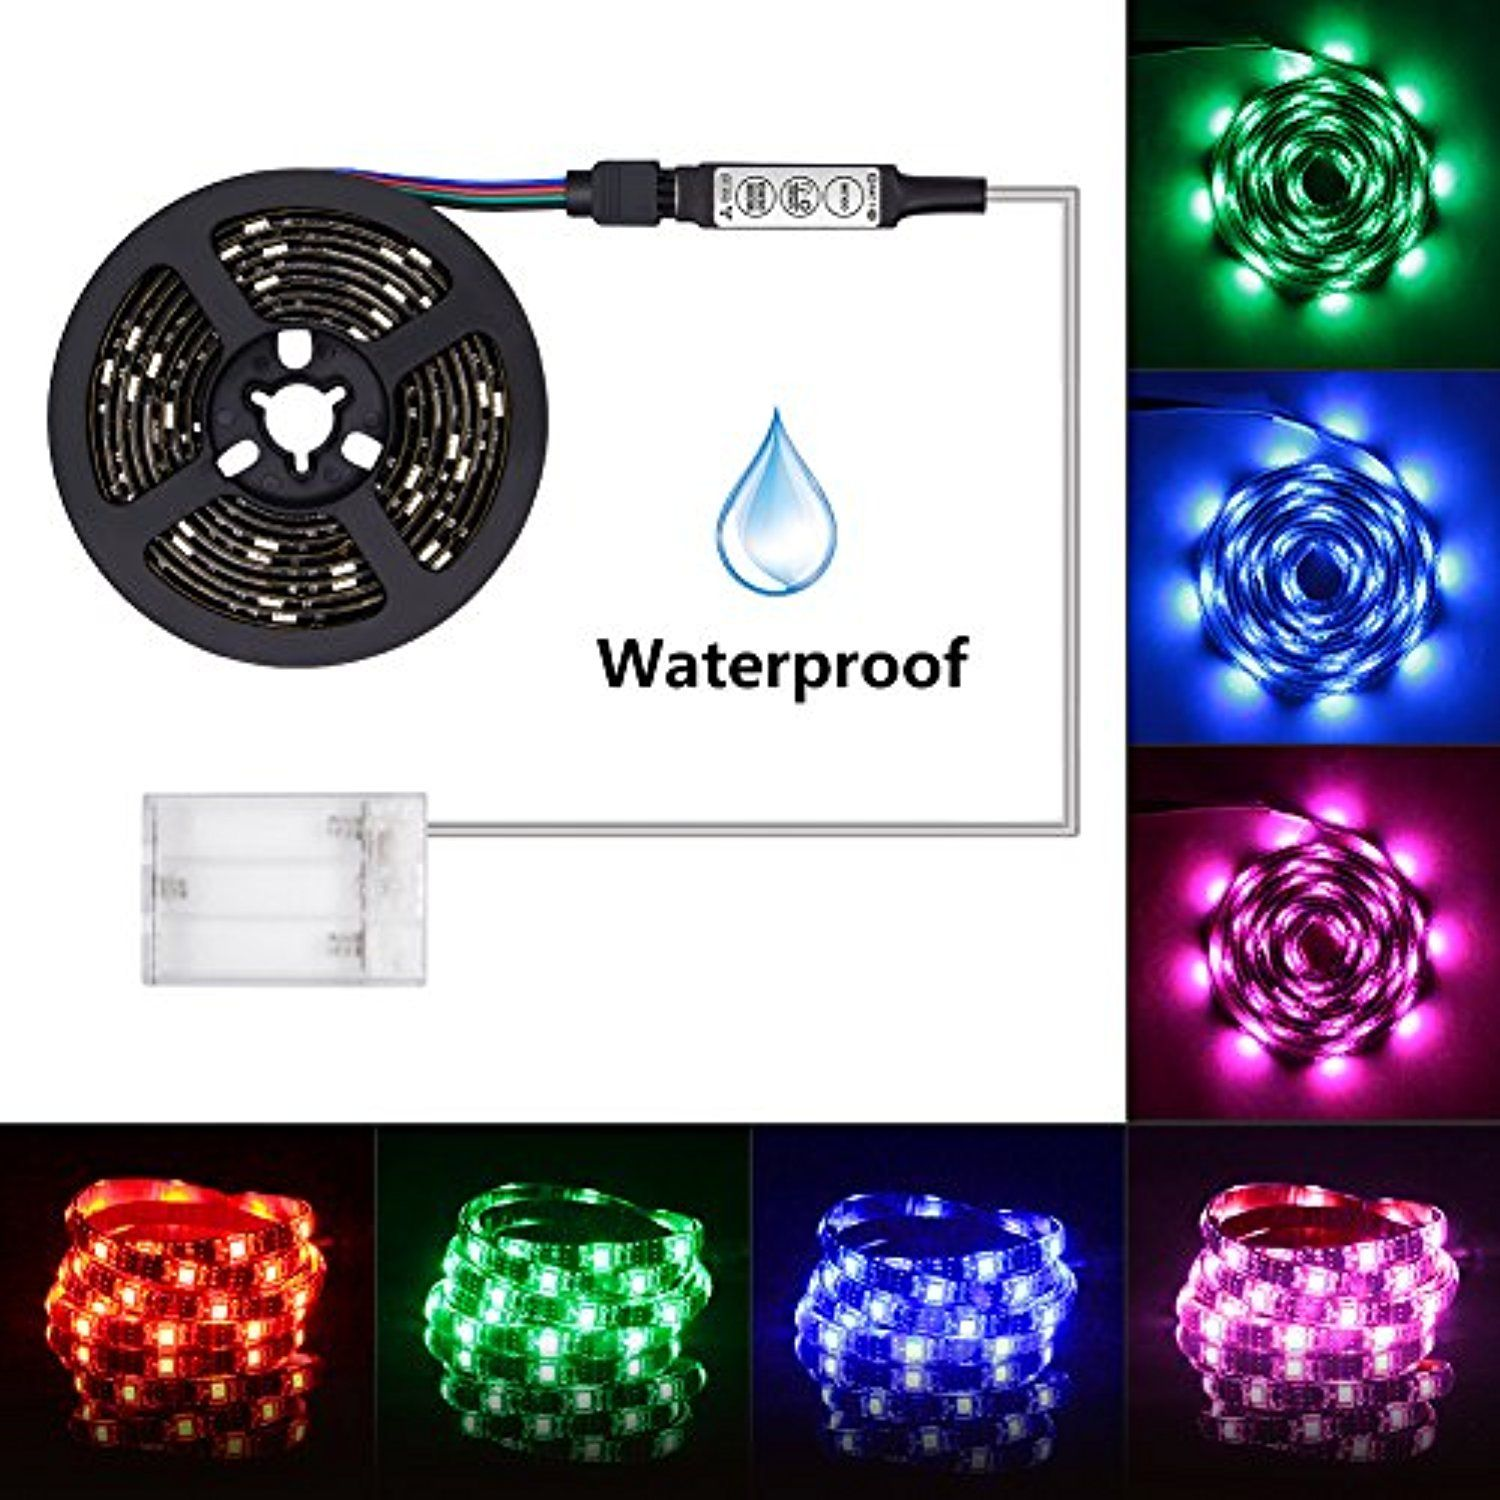 Led Light Strip Battery Powered Xyop 2m 6 6ft Waterproof Flexible Rgb Led Strip Lights Smd Color Changing Rope Lights Led Strip Lighting Rgb Led Strip Lights